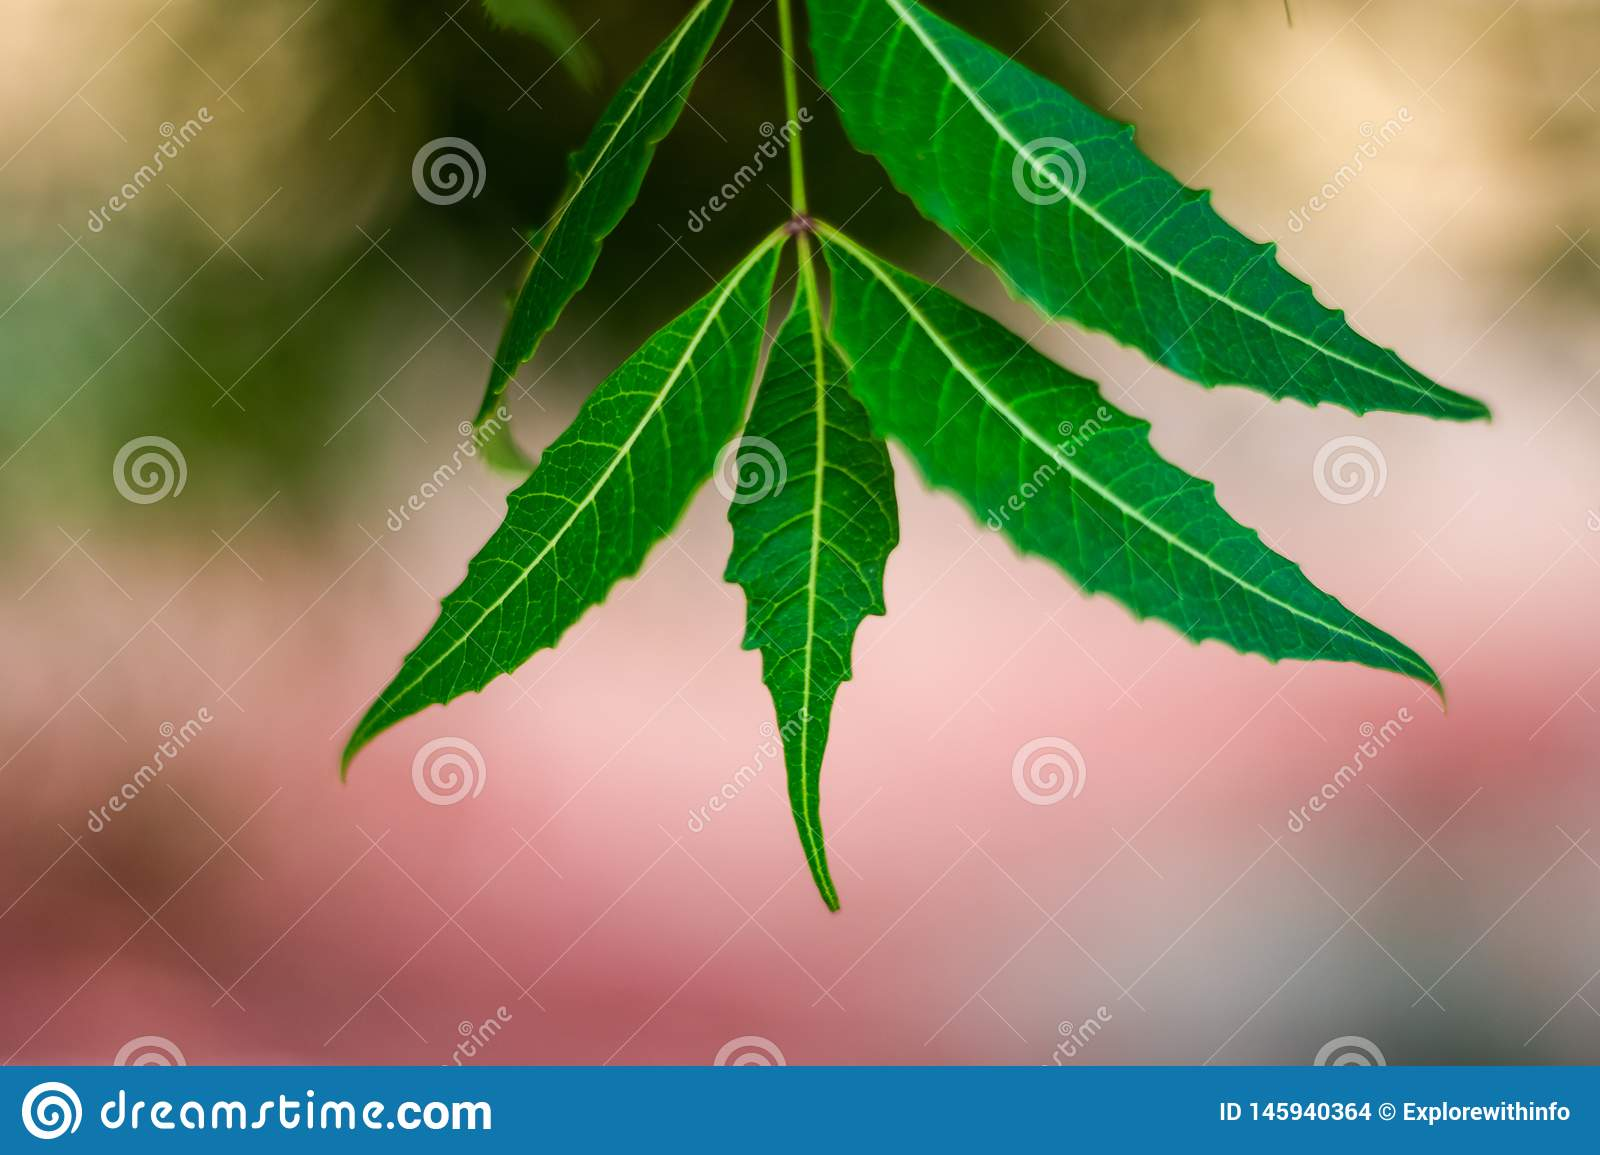 Neem Tree Or Azadirachta Indica Leaf With Blurred Background Stock